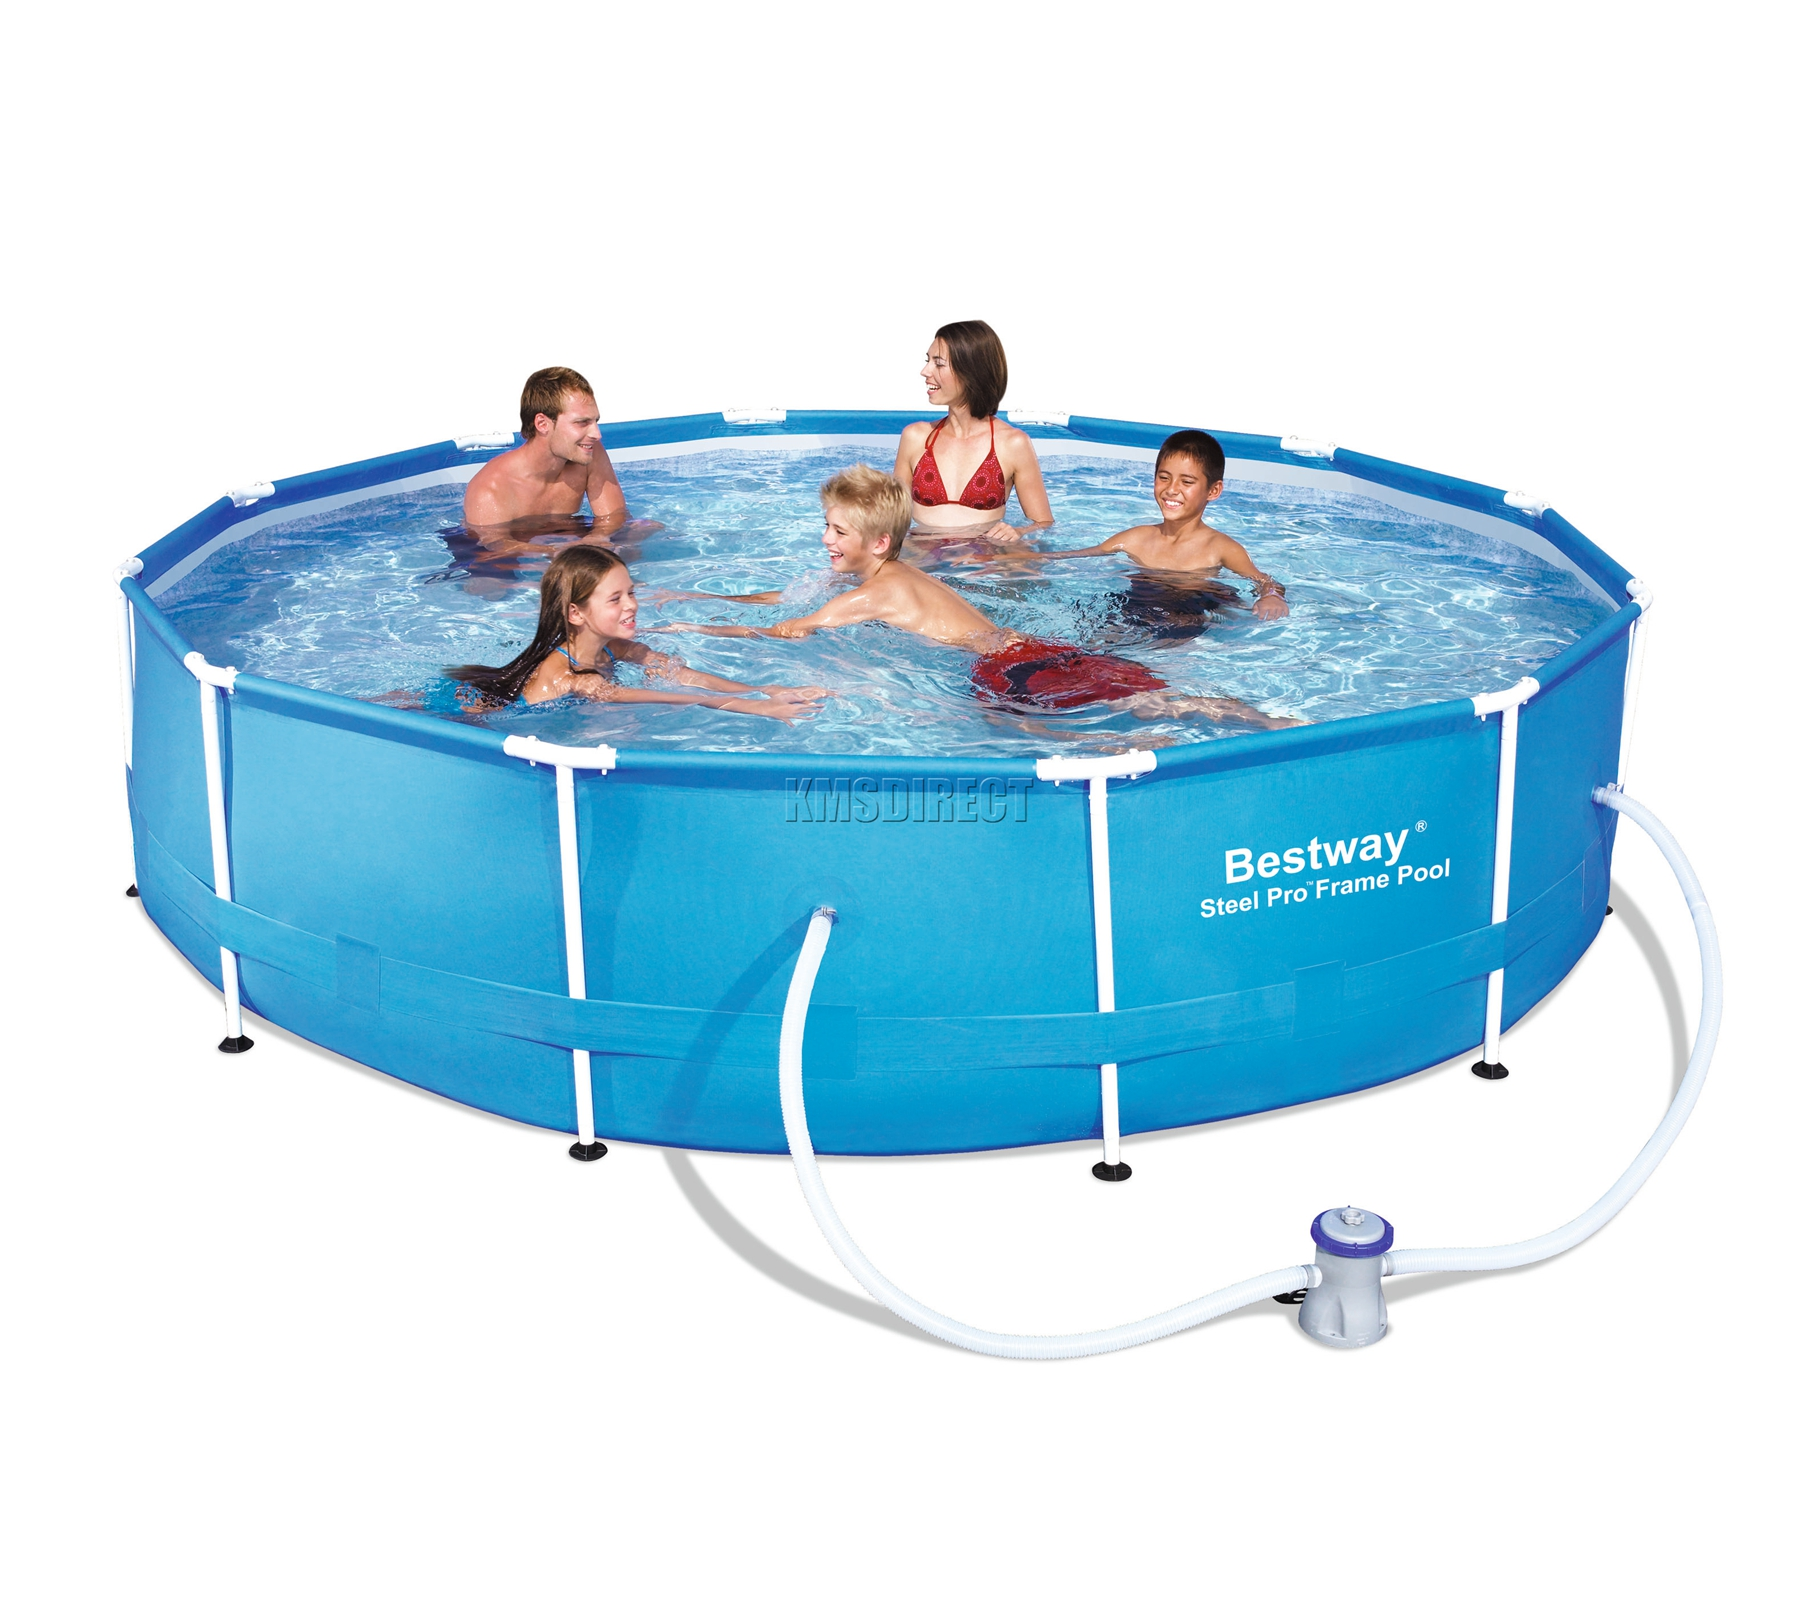 Bestway steel pro frame swimming pool set round above for Above ground swimming pools uk